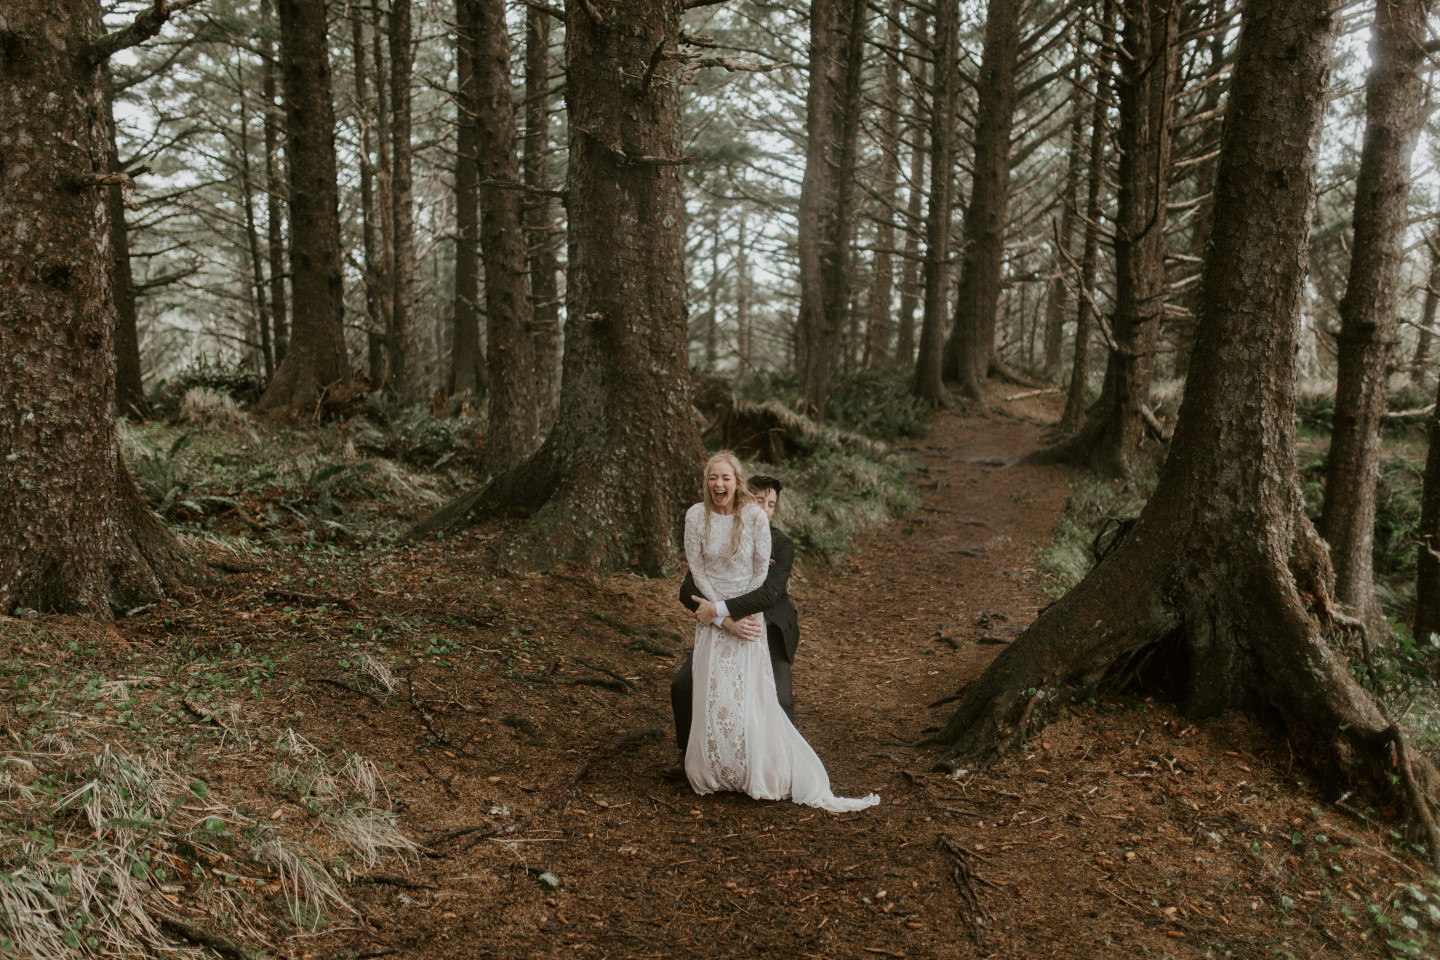 Grant prepares to lift Hannah in the woods of Cannon Beach, Oregon during their Oregon coast elopement. Wedding photography in Portland Oregon by Sienna Plus Josh.